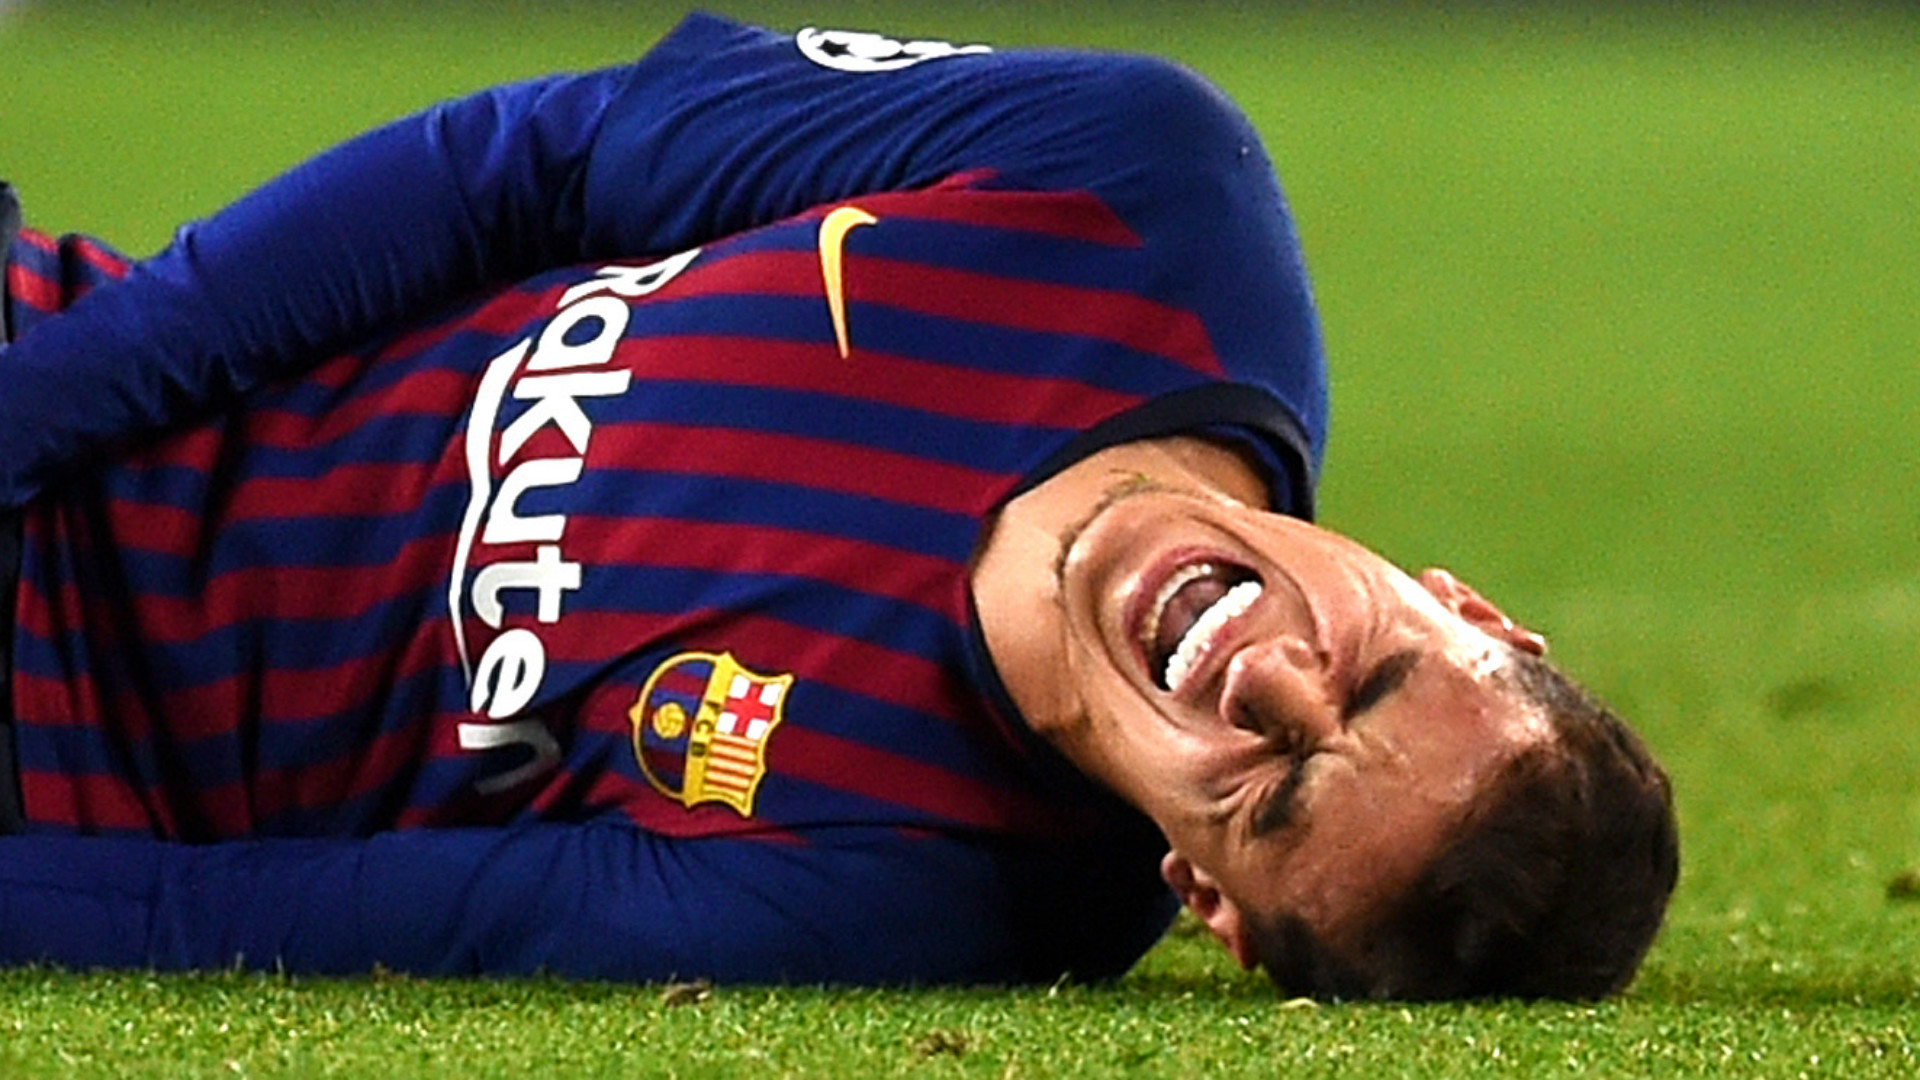 Barcelona: Neymar imploring club to re-sign him - El Mundo